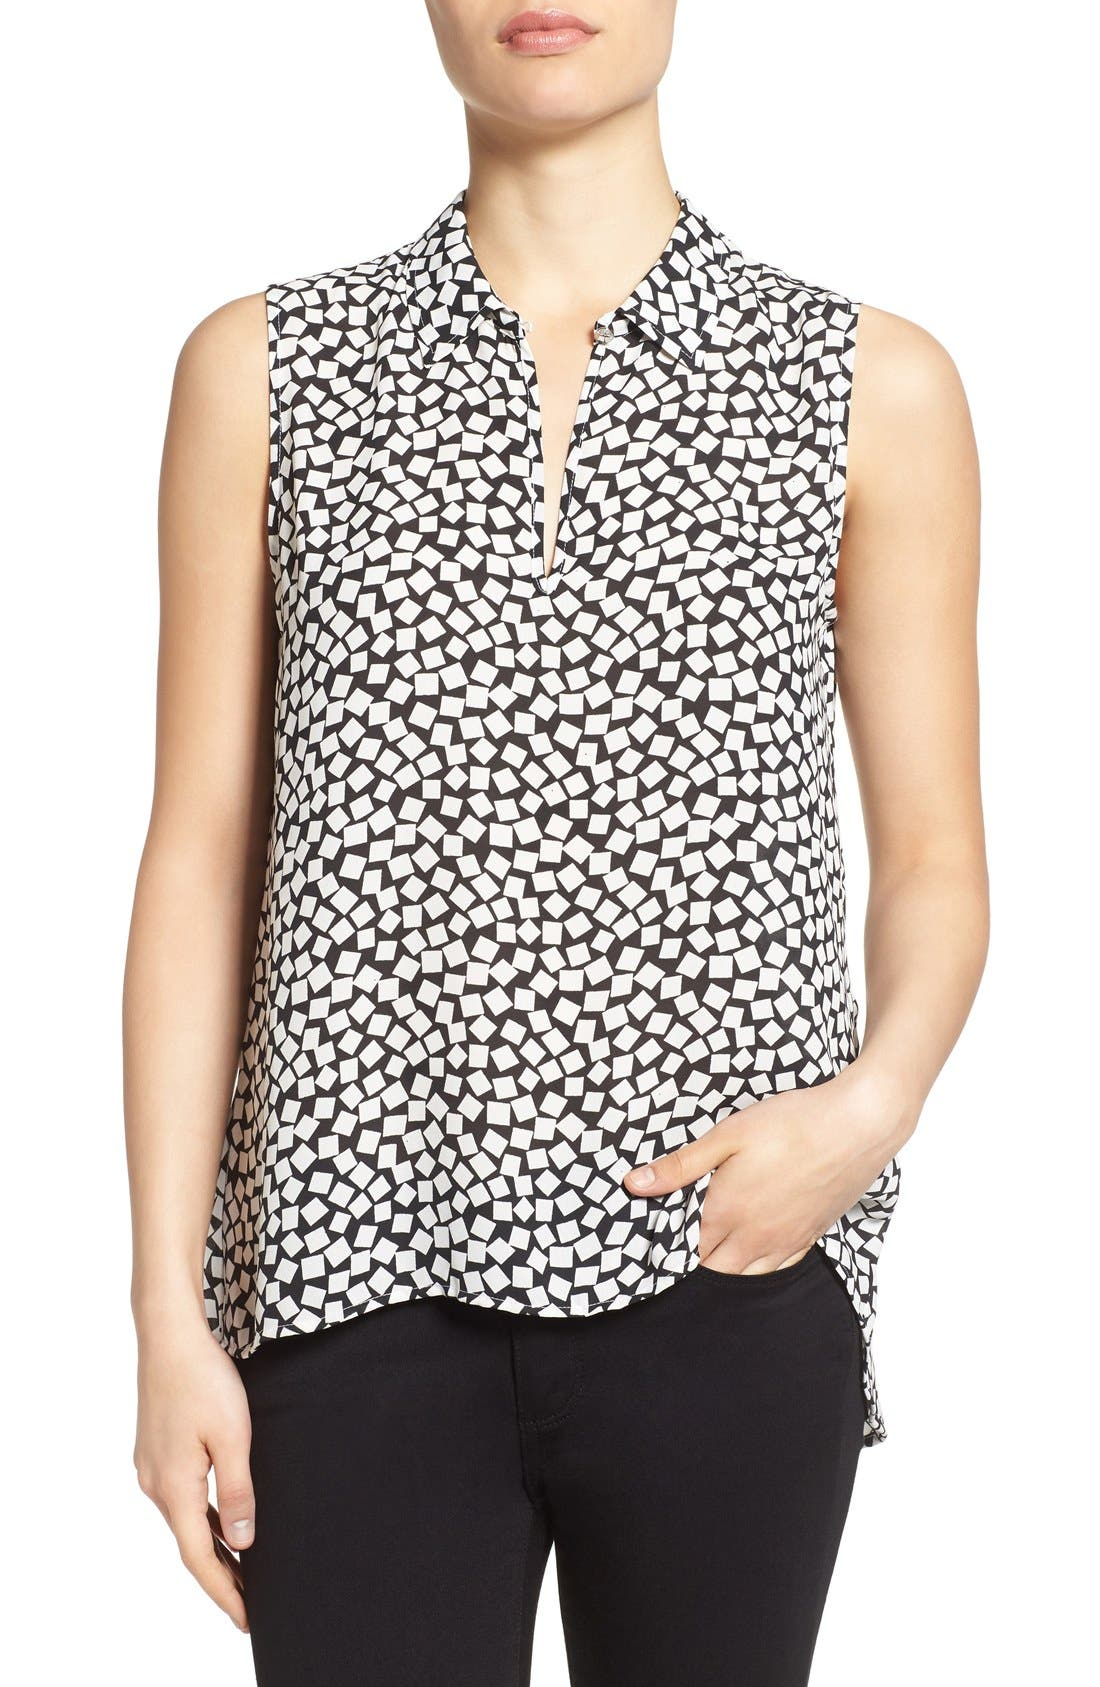 Main Image - Vince Camuto Print Collared Keyhole Neck Sleeveless Blouse